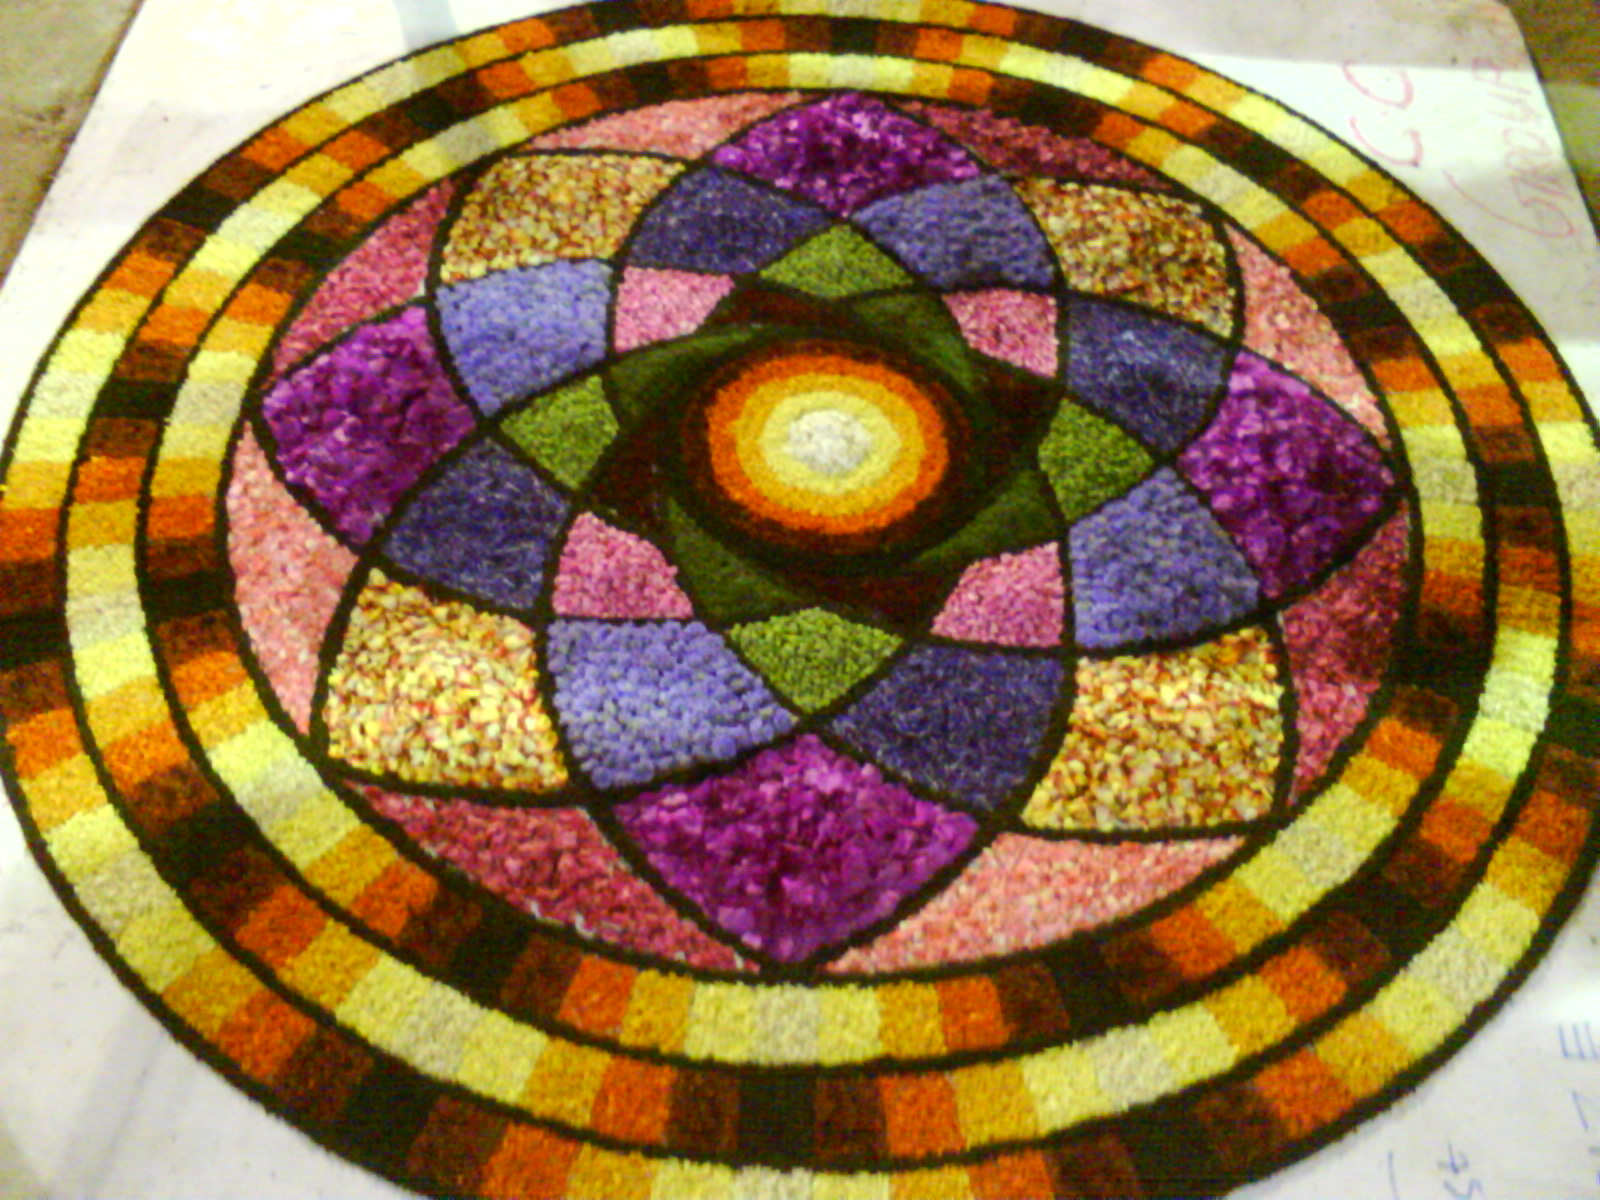 Rangoli designs wallpaper diwali rangoli designs flower for Floor rangoli design